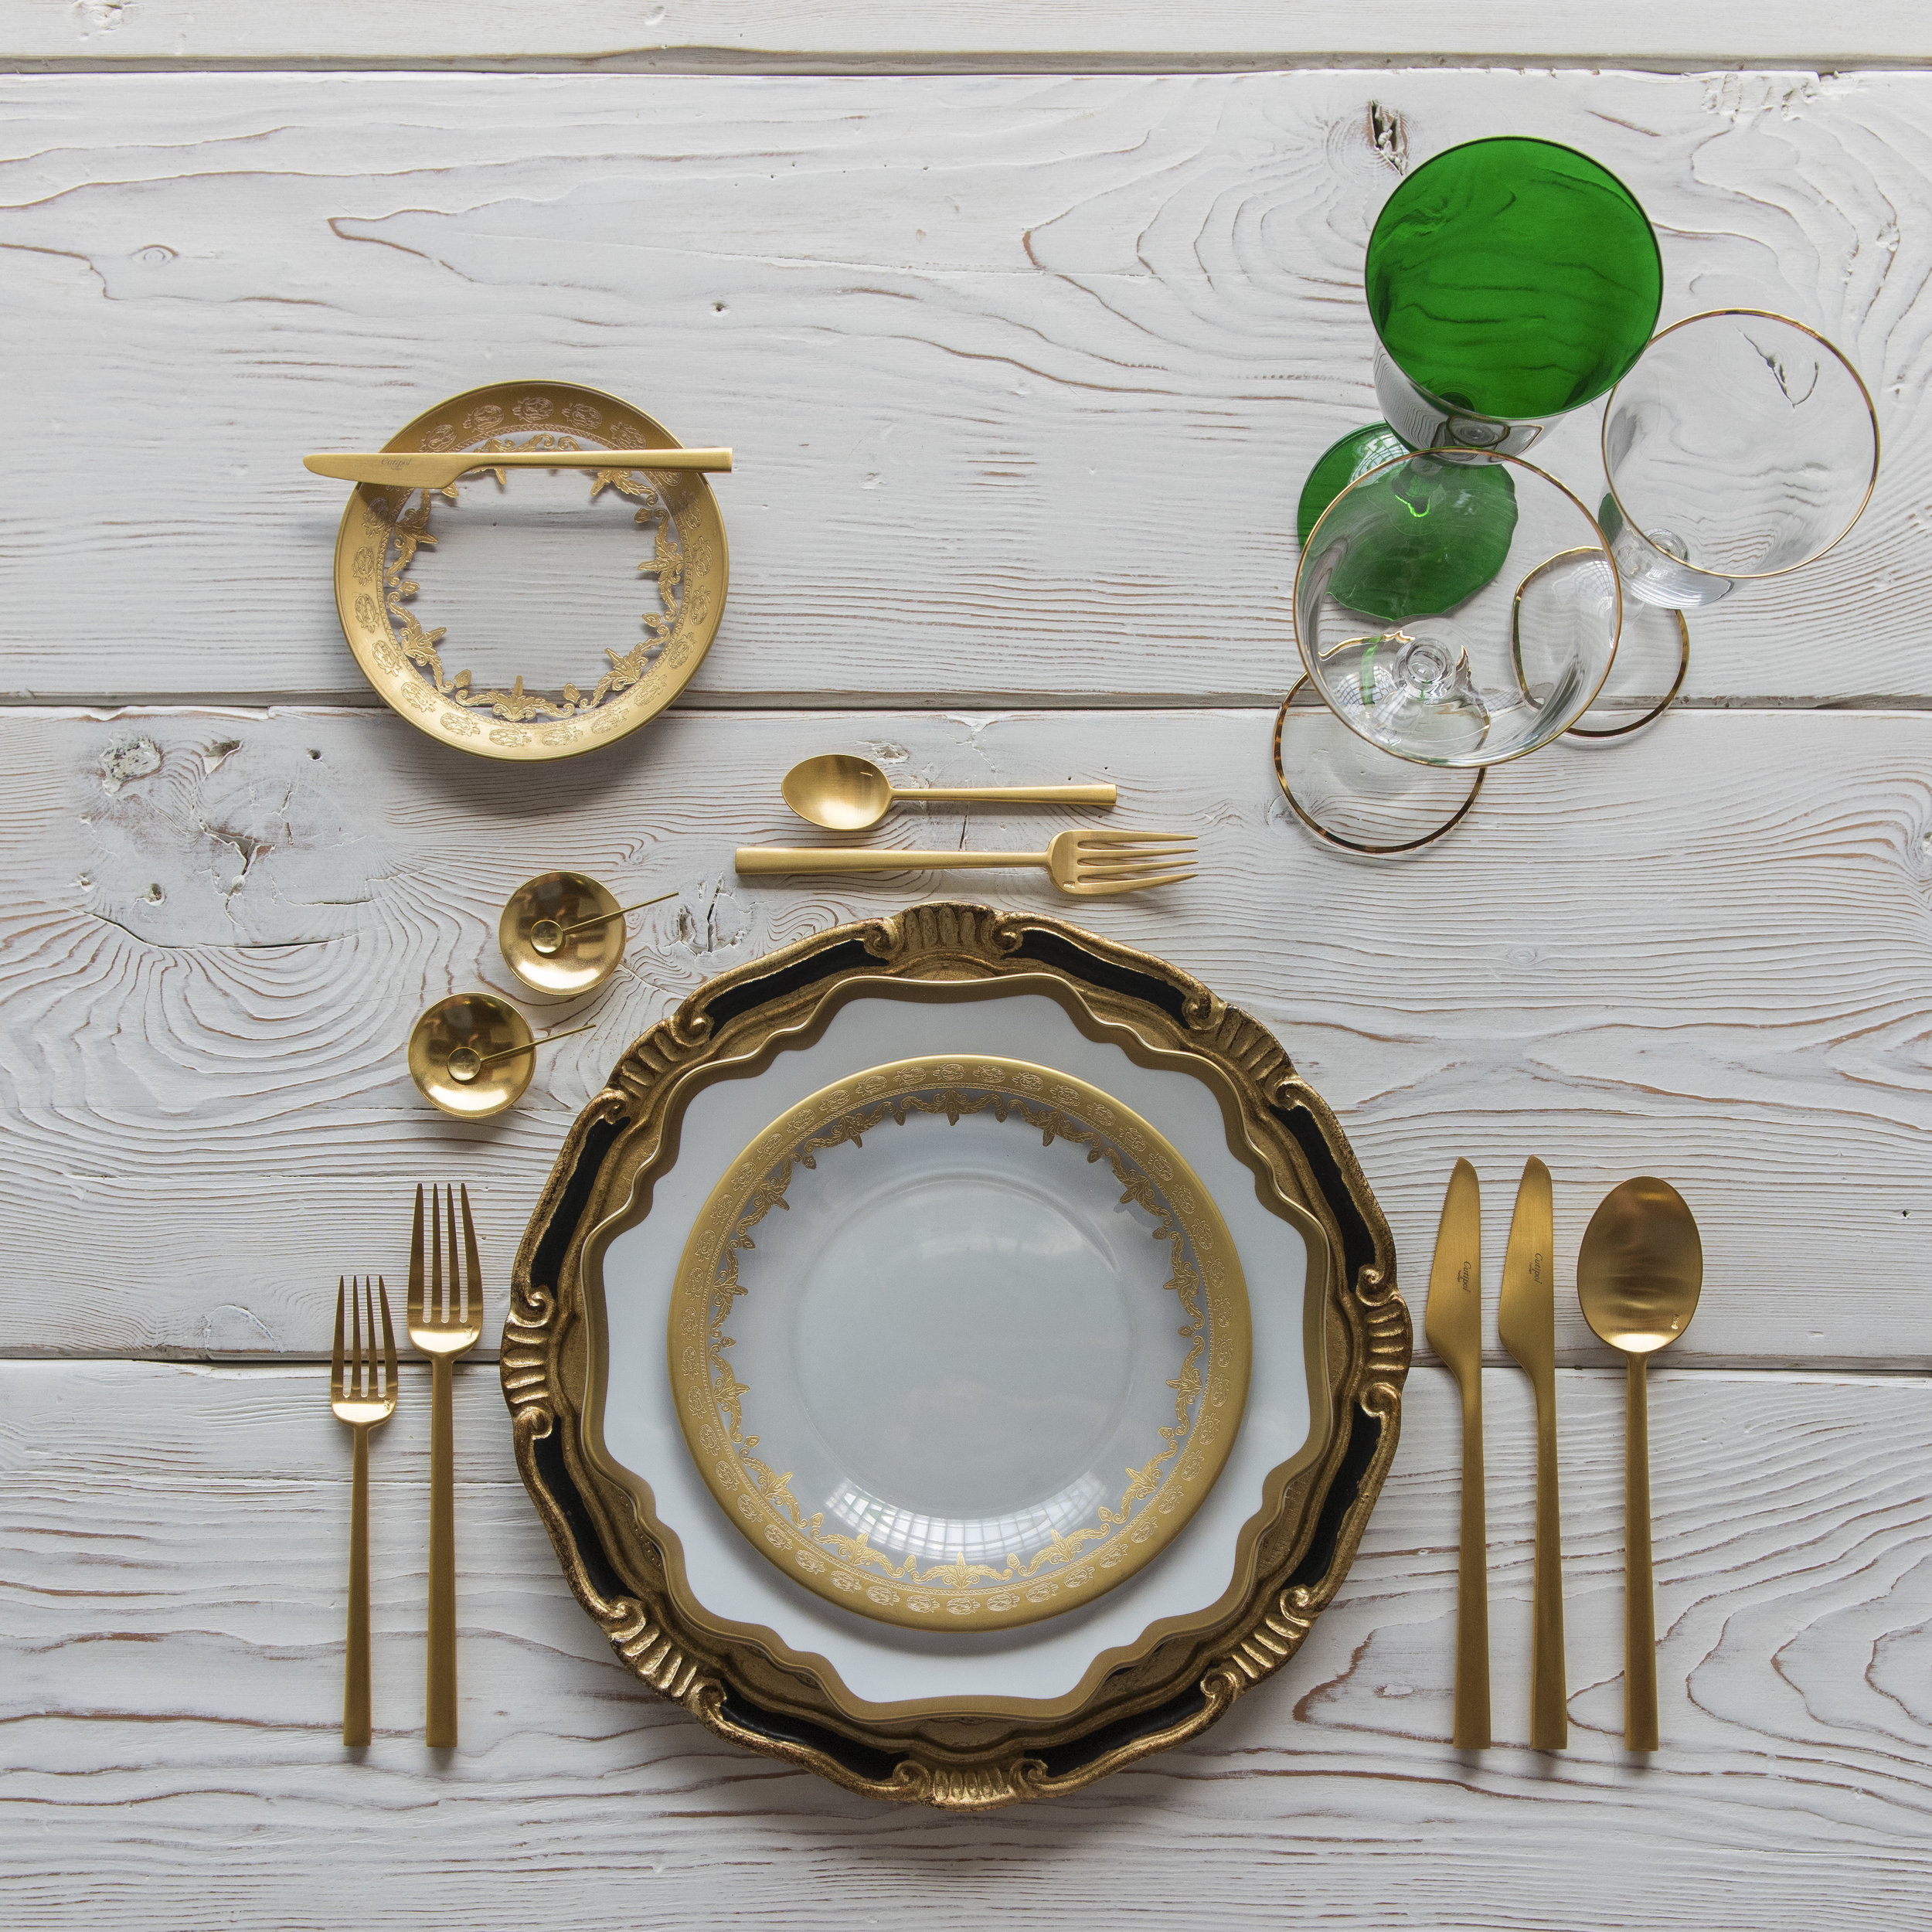 RENT: Florentine Chargers in Black/Gold + Anna Weatherley Dinnerware in White/Gold + Versailles Glass Dinnerware in 24k Gold + Rondo Flatware in Brushed 24k Gold + Chloe 24k Gold Rimmed Stemware + Chloe 24k Gold Rimmed Goblet in Emerald + 14k Gold Salt Cellars + Tiny Gold Spoons   SHOP: Florentine Chargers in Black/Gold + Anna Weatherley Dinnerware in White/Gold + Rondo Flatware in Brushed 24k Gold + Chloe 24k Gold Rimmed Stemware + 14k Gold Salt Cellars + Tiny Gold Spoons